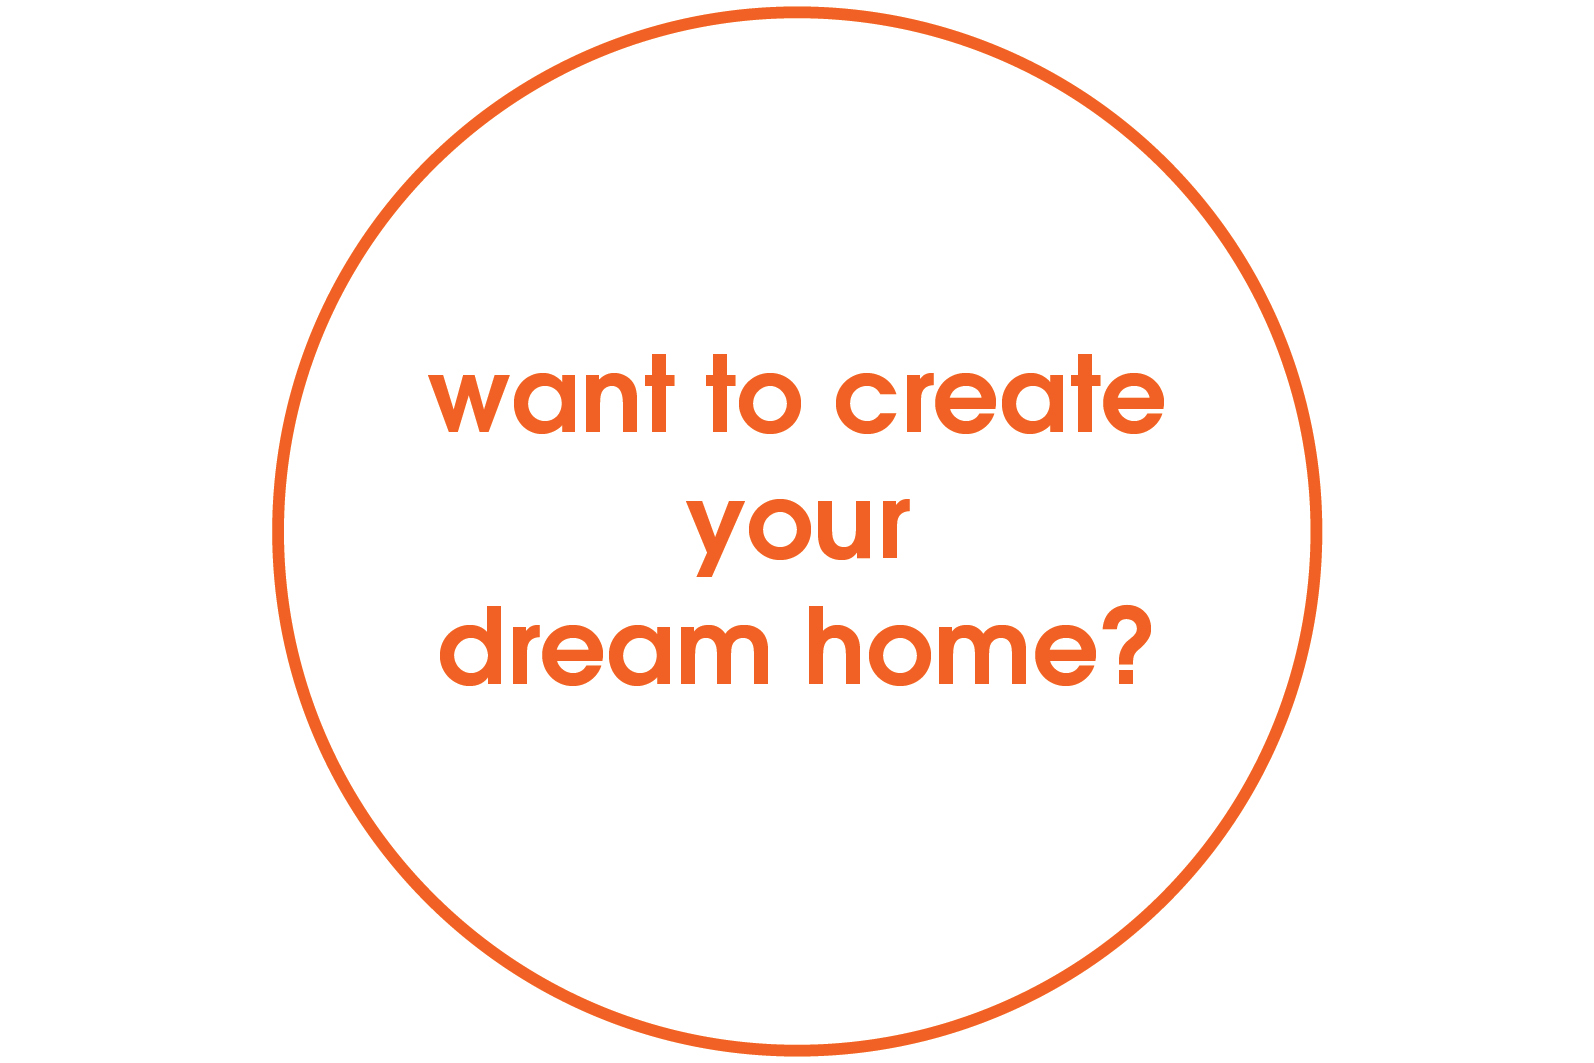 want to create your dream home